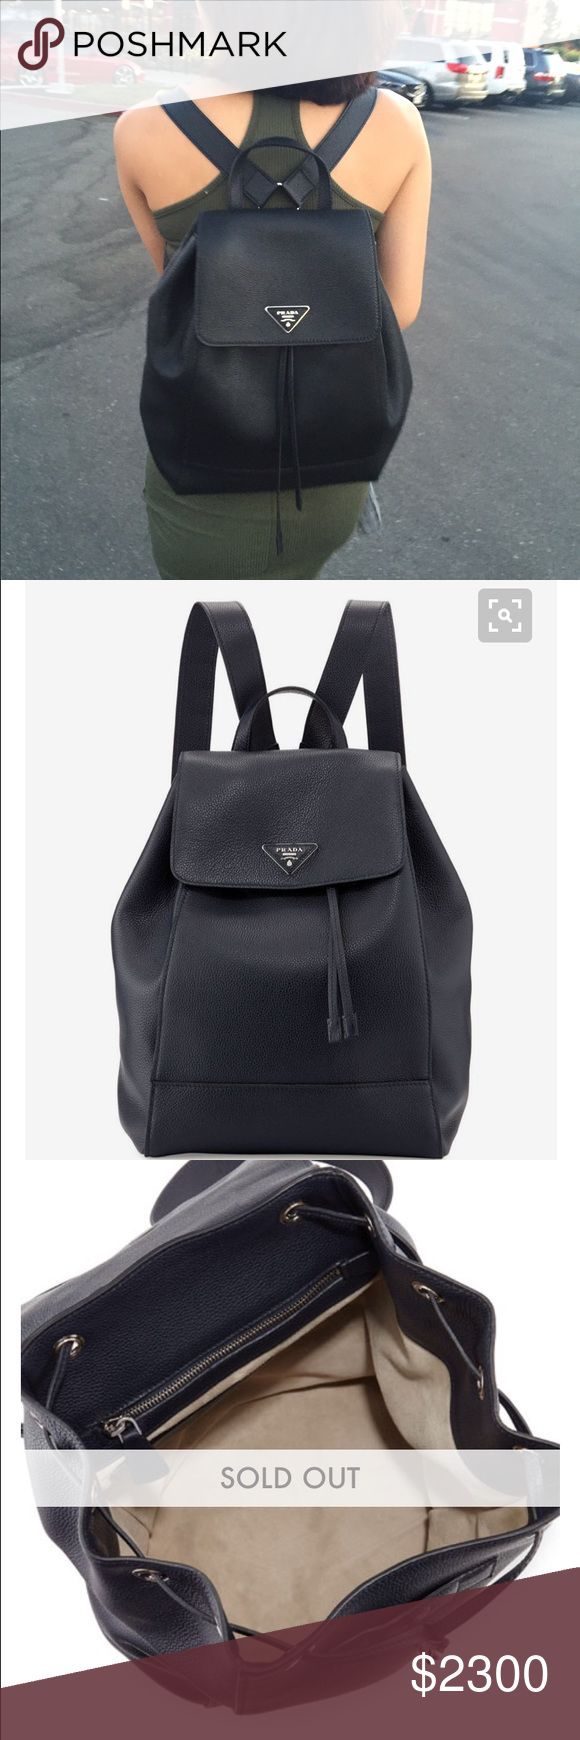 Prada Backpack Prada backpack - sold out in black. Comes with dust bag, authenticity card, and Prada paper bag. Exclude bundle discount Prada Bags Backpacks